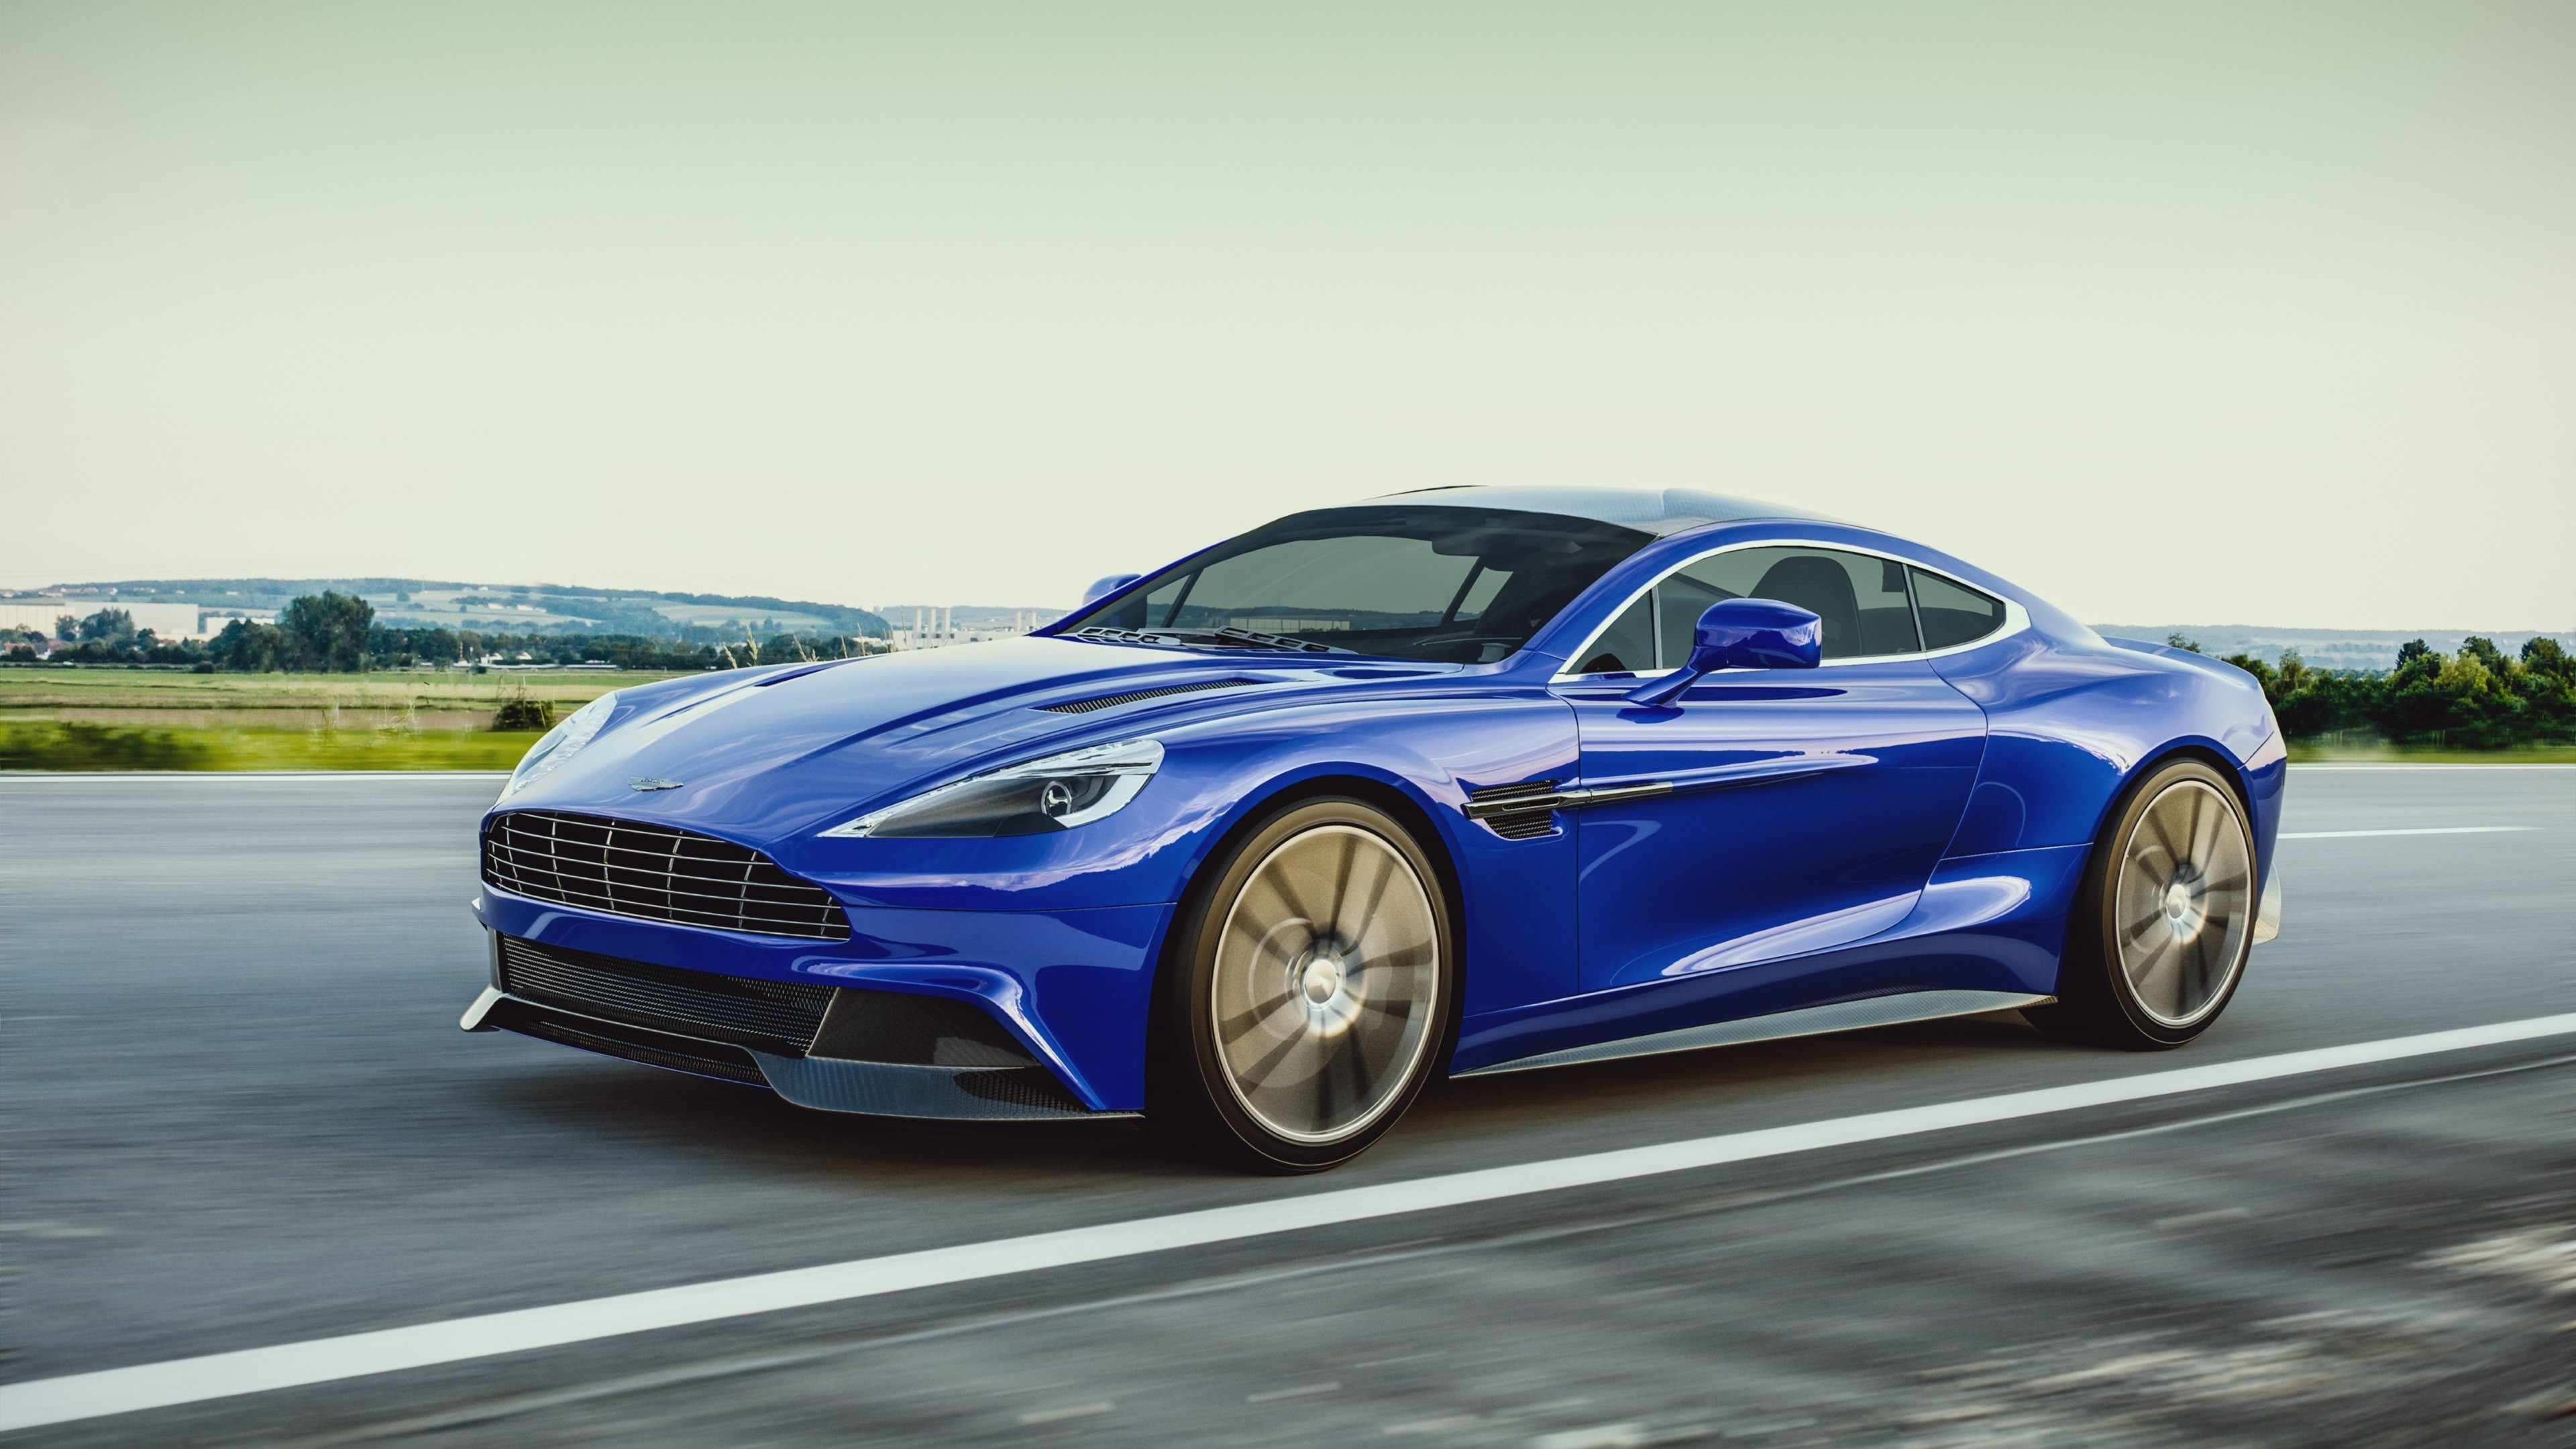 Delicieux 1920x1080 Aston Martin Vanquish Side Crystal City Car 2014  .